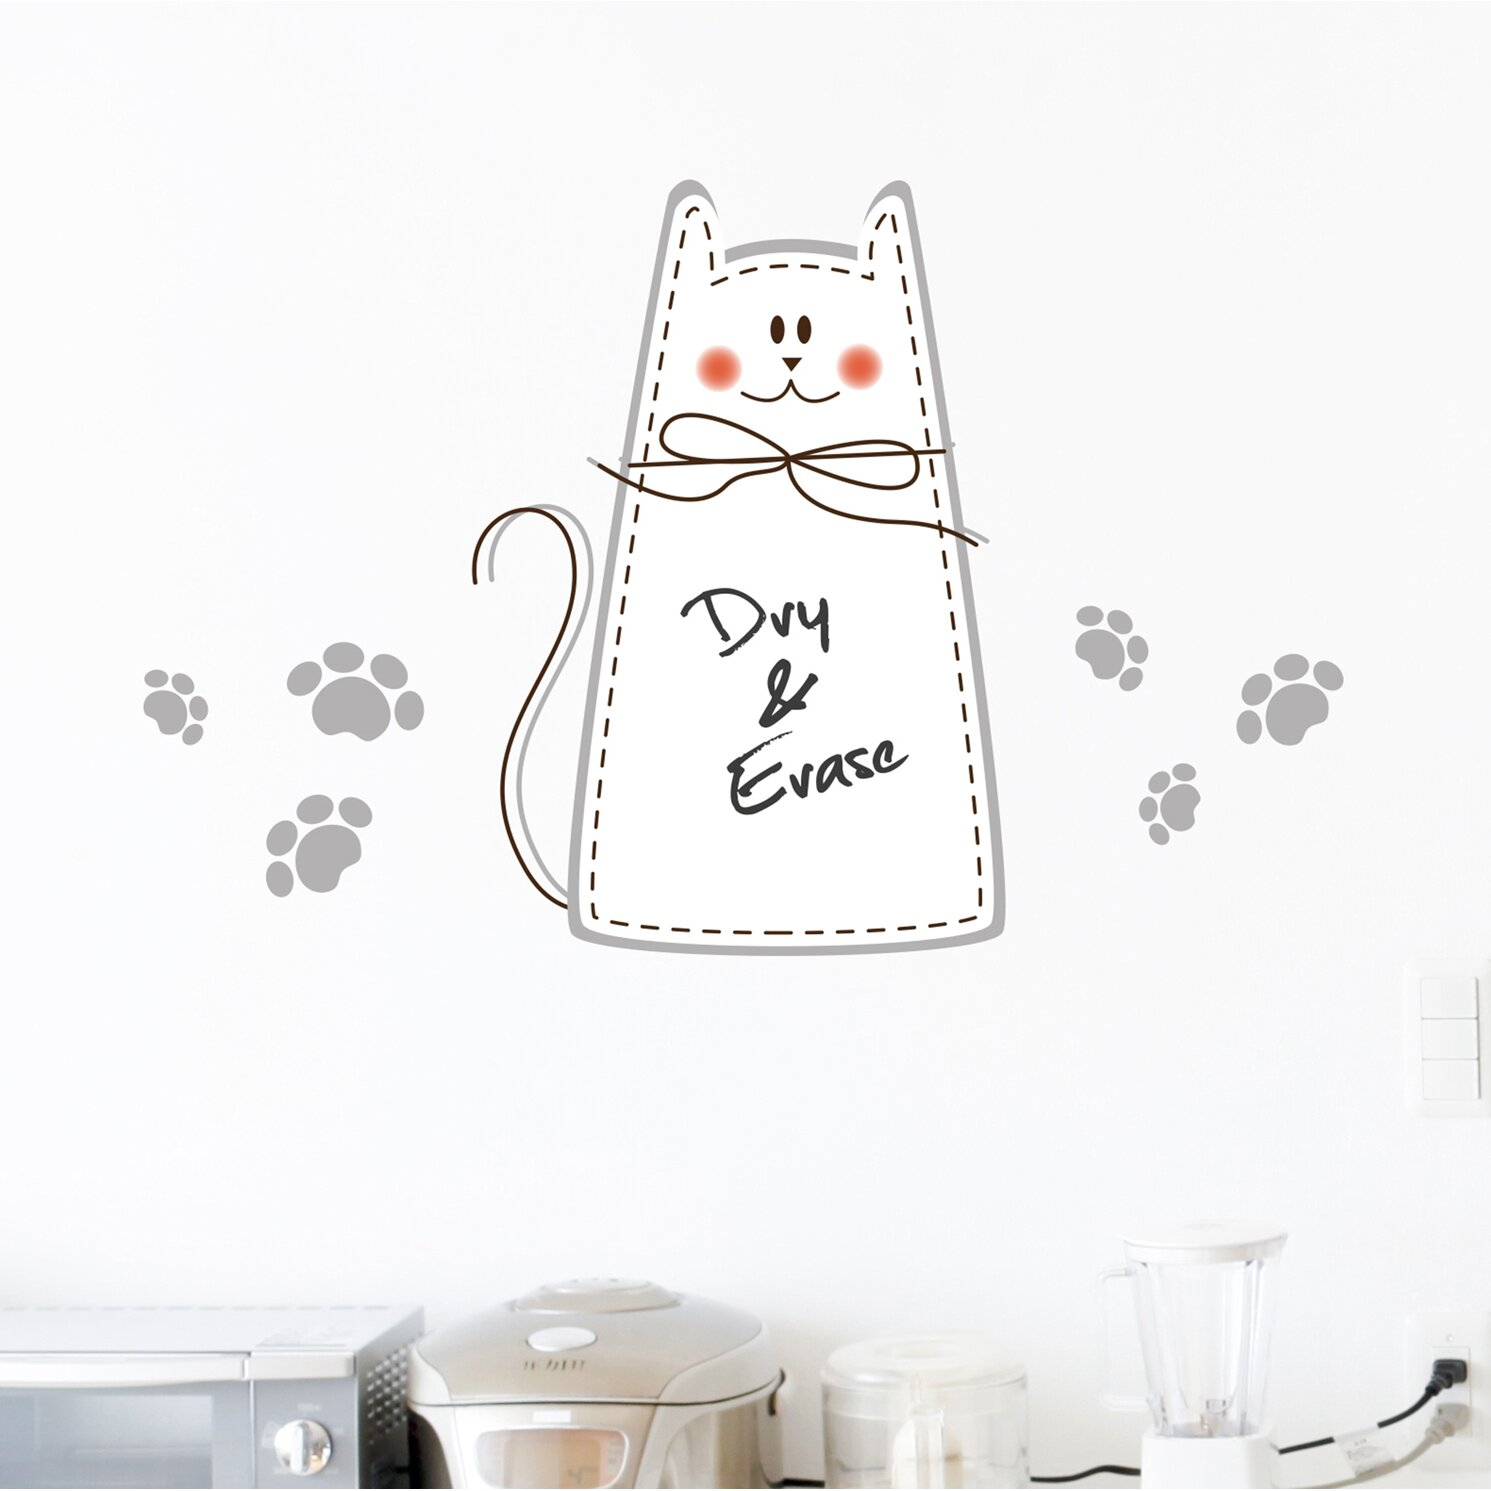 Wallpops Home Decor Line Cat Whiteboard Wall Decal Wayfair